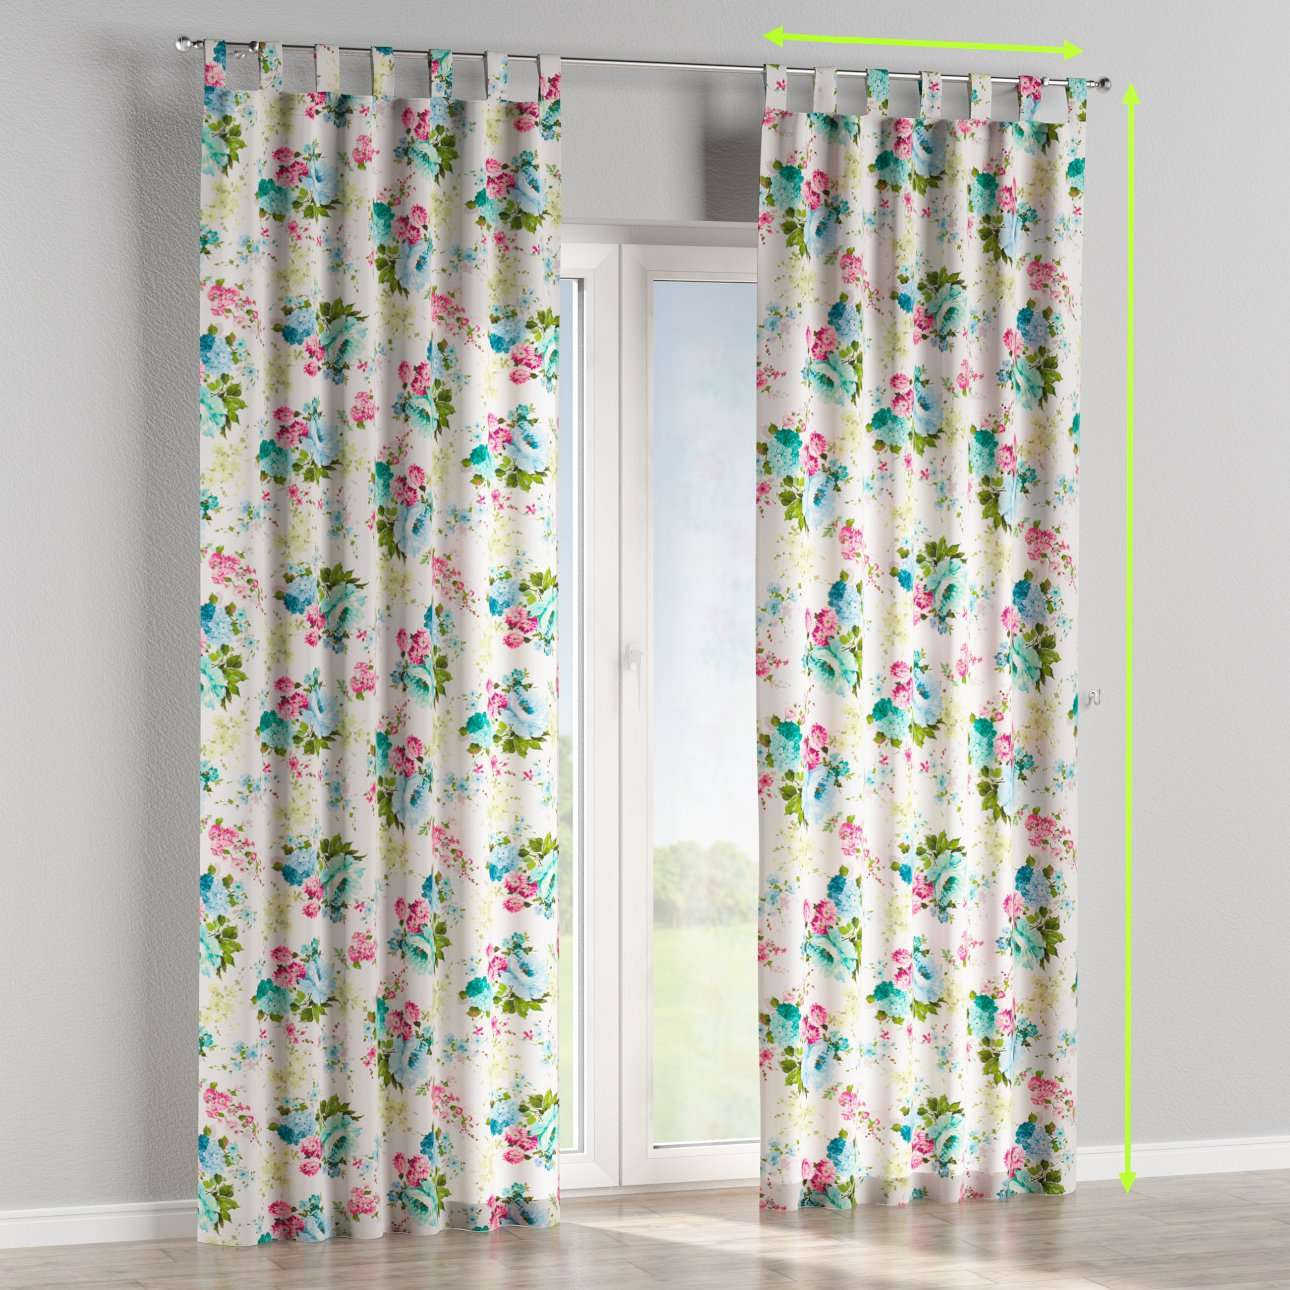 Tab top lined curtains in collection Monet, fabric: 140-02